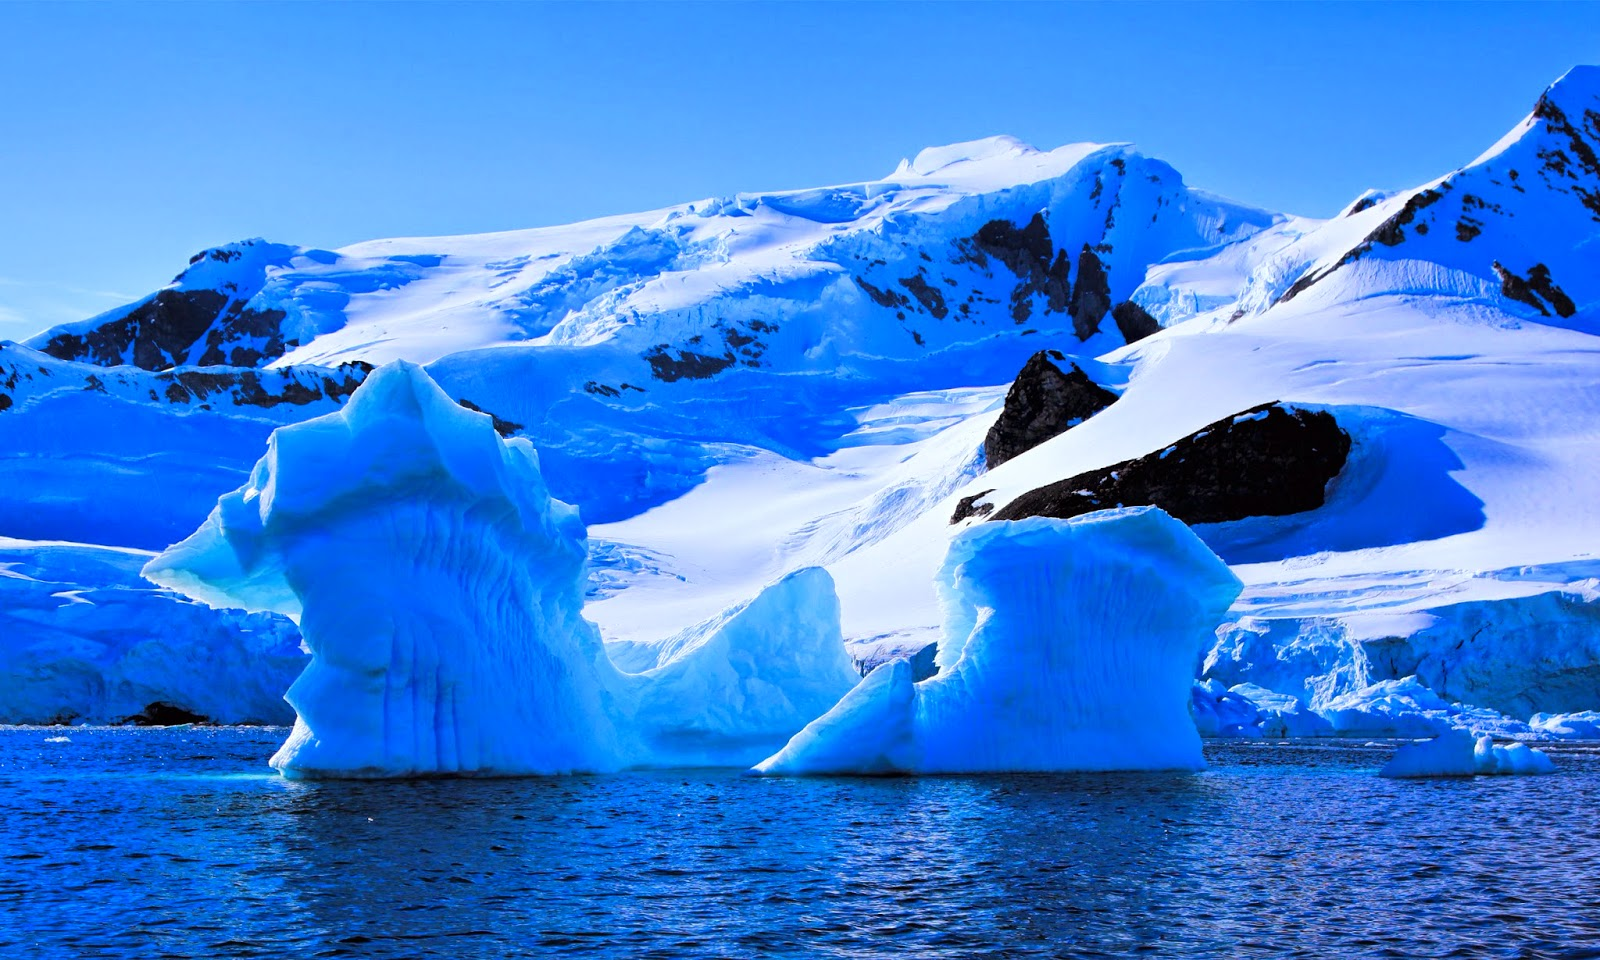 antarctica and clouds wallpaper - photo #14